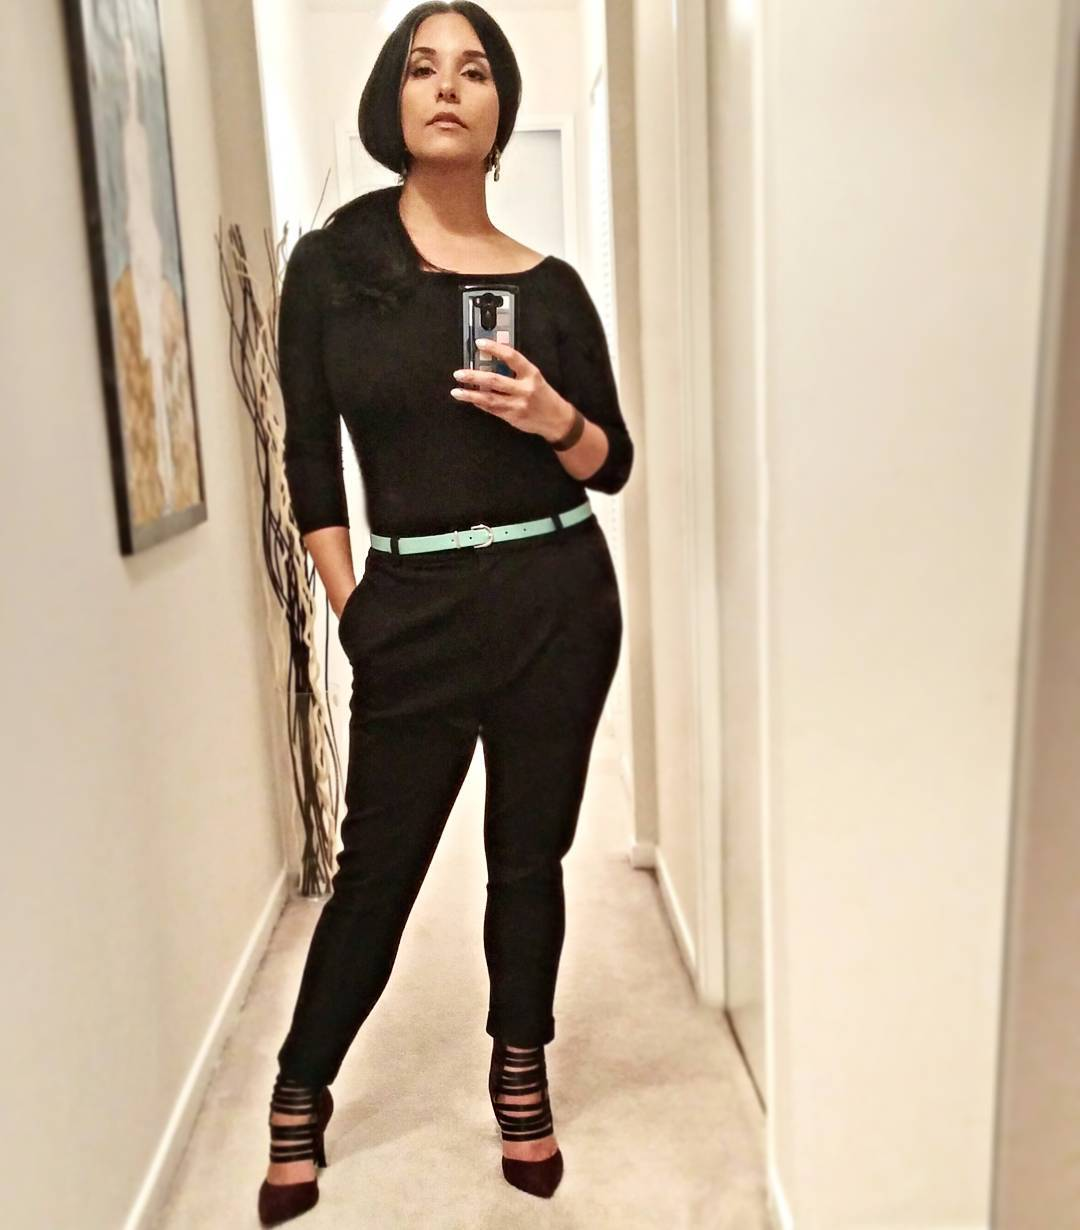 #OOTD for a taping of Cityline's Makeover Madness: @the_slm_ pant 2.0 (possibly my moat favourite pants. Ever.) @ninewestcanada burgundy heels (possibly the purdiest fall shoes. Ever.)